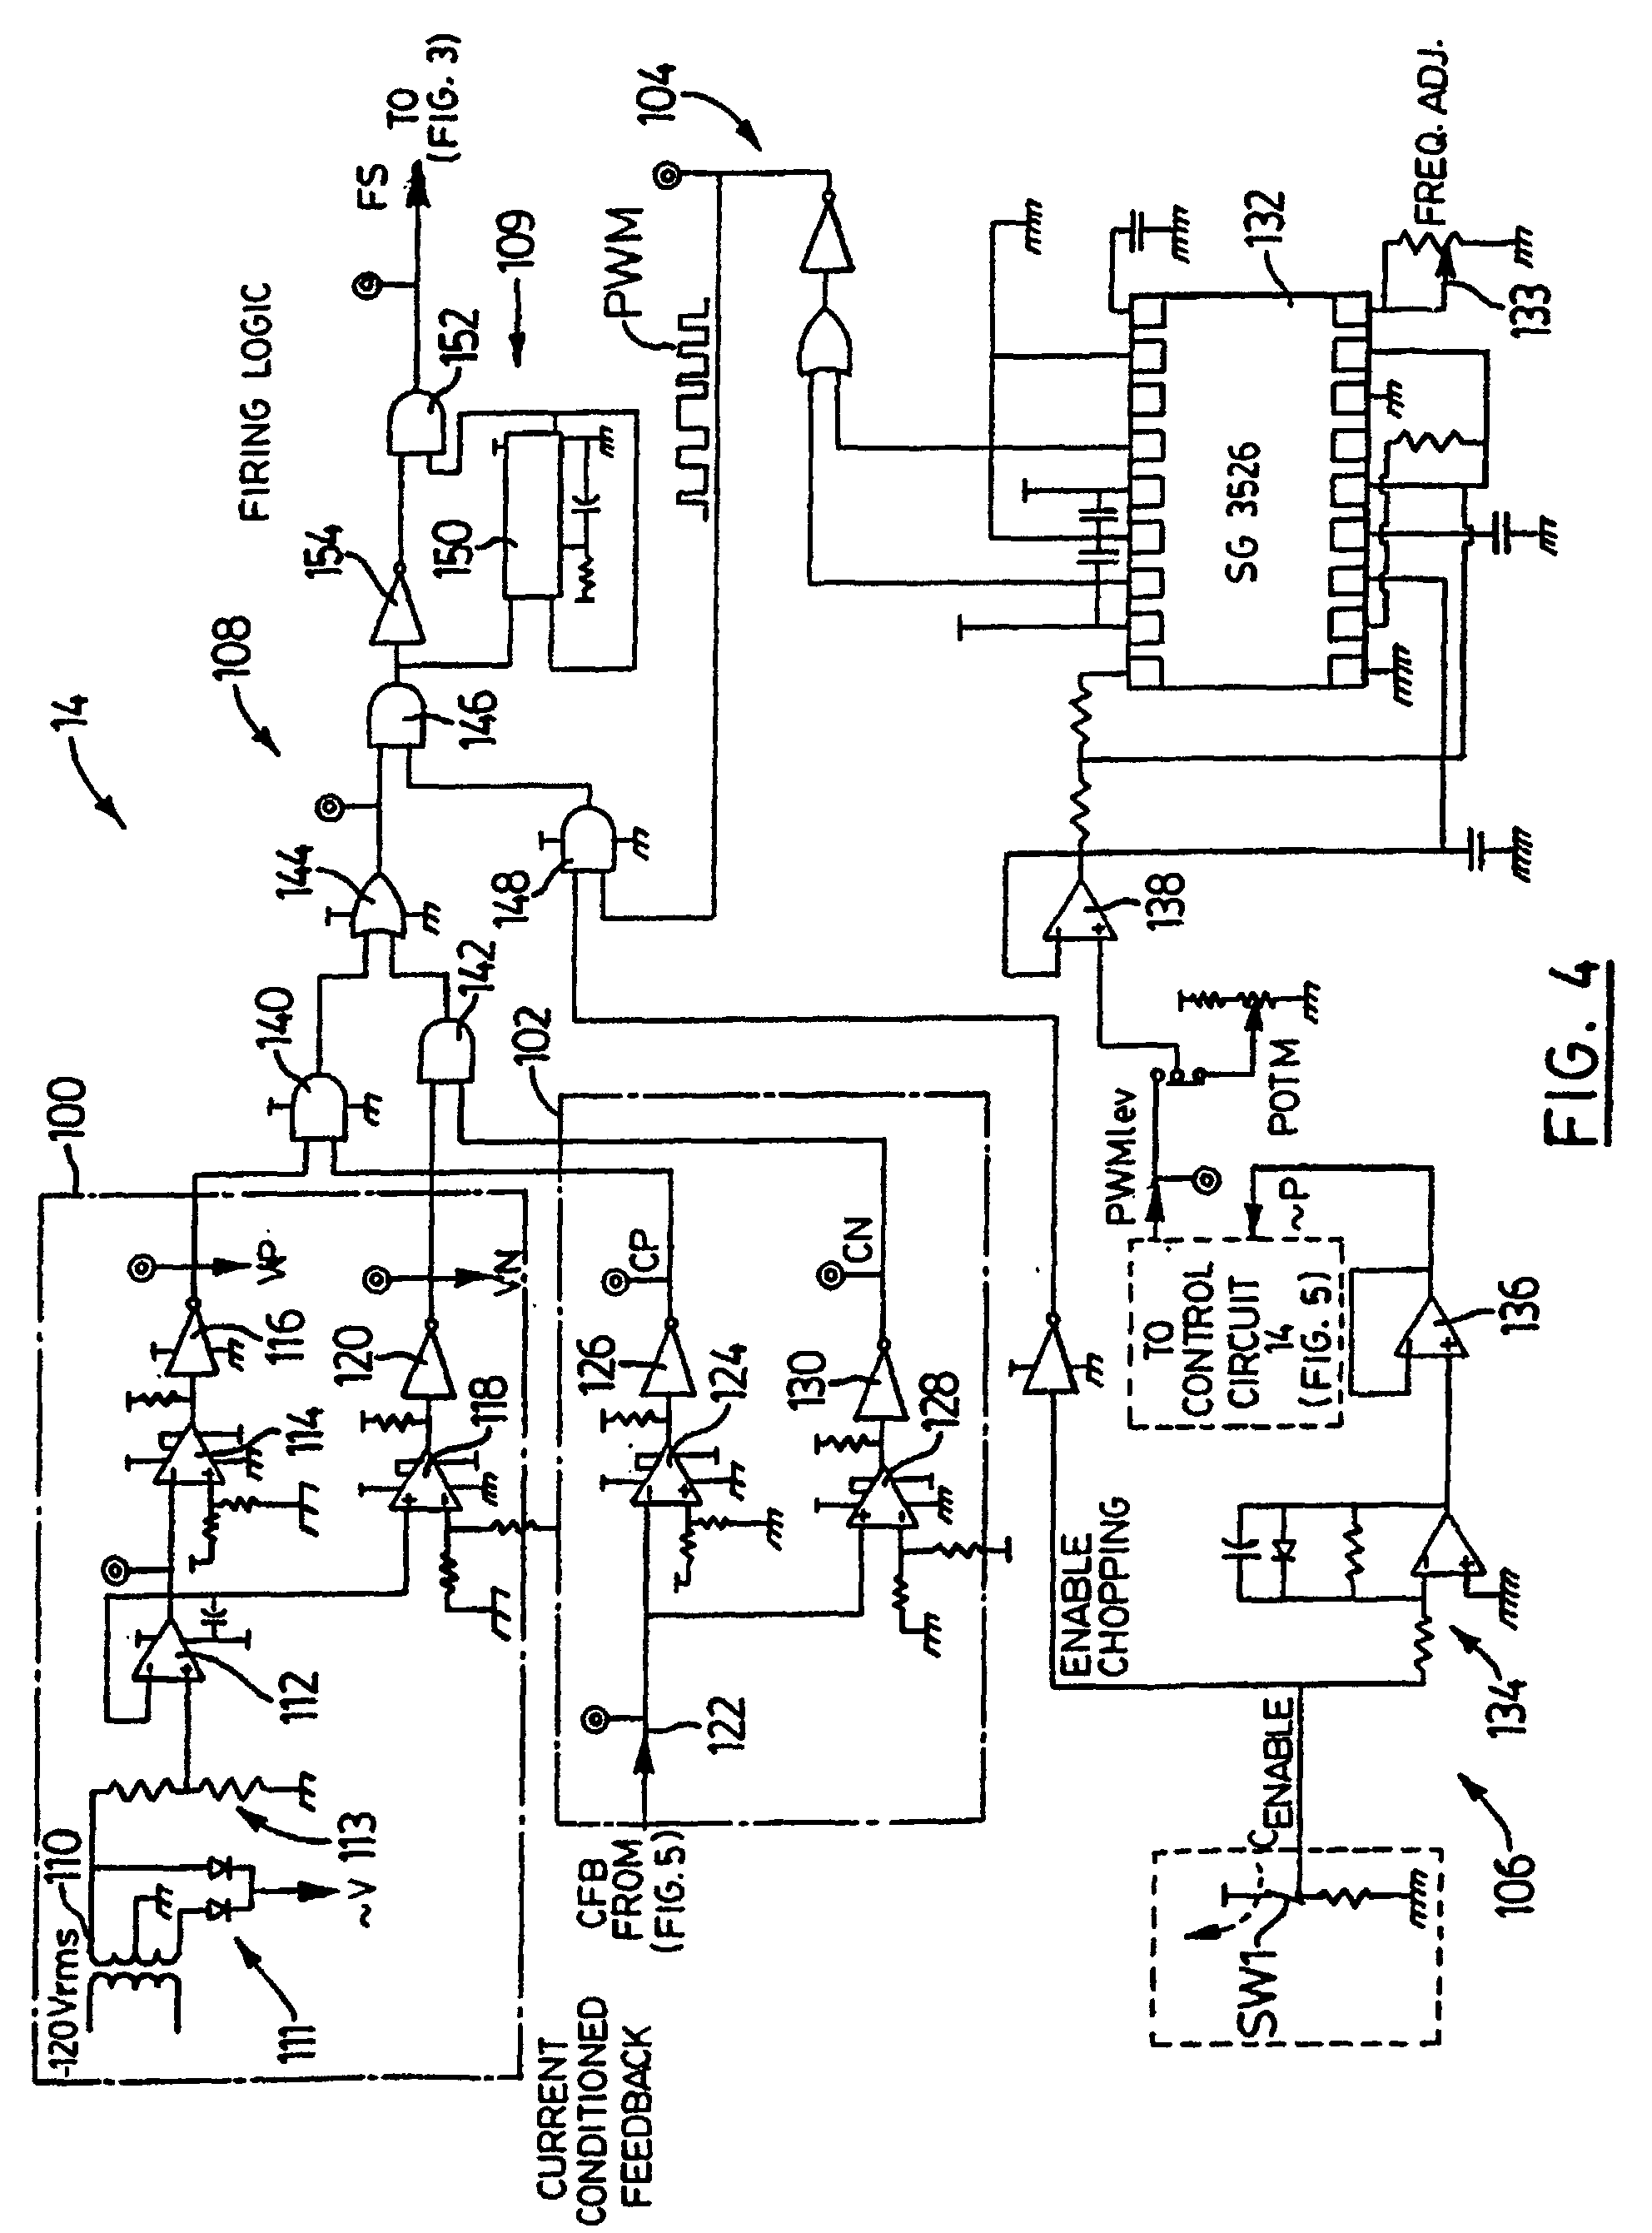 fluorescent light generator with Ep1120022b1 on Electrical Schematic Symbol L further Electrical Parallel Wiring Diagram likewise Simplest Modified Sinewave Inverter Without Microcontroller as well Inverter Schematic Wiring Diagram also Multi Switch Wiring Diagram For Box.